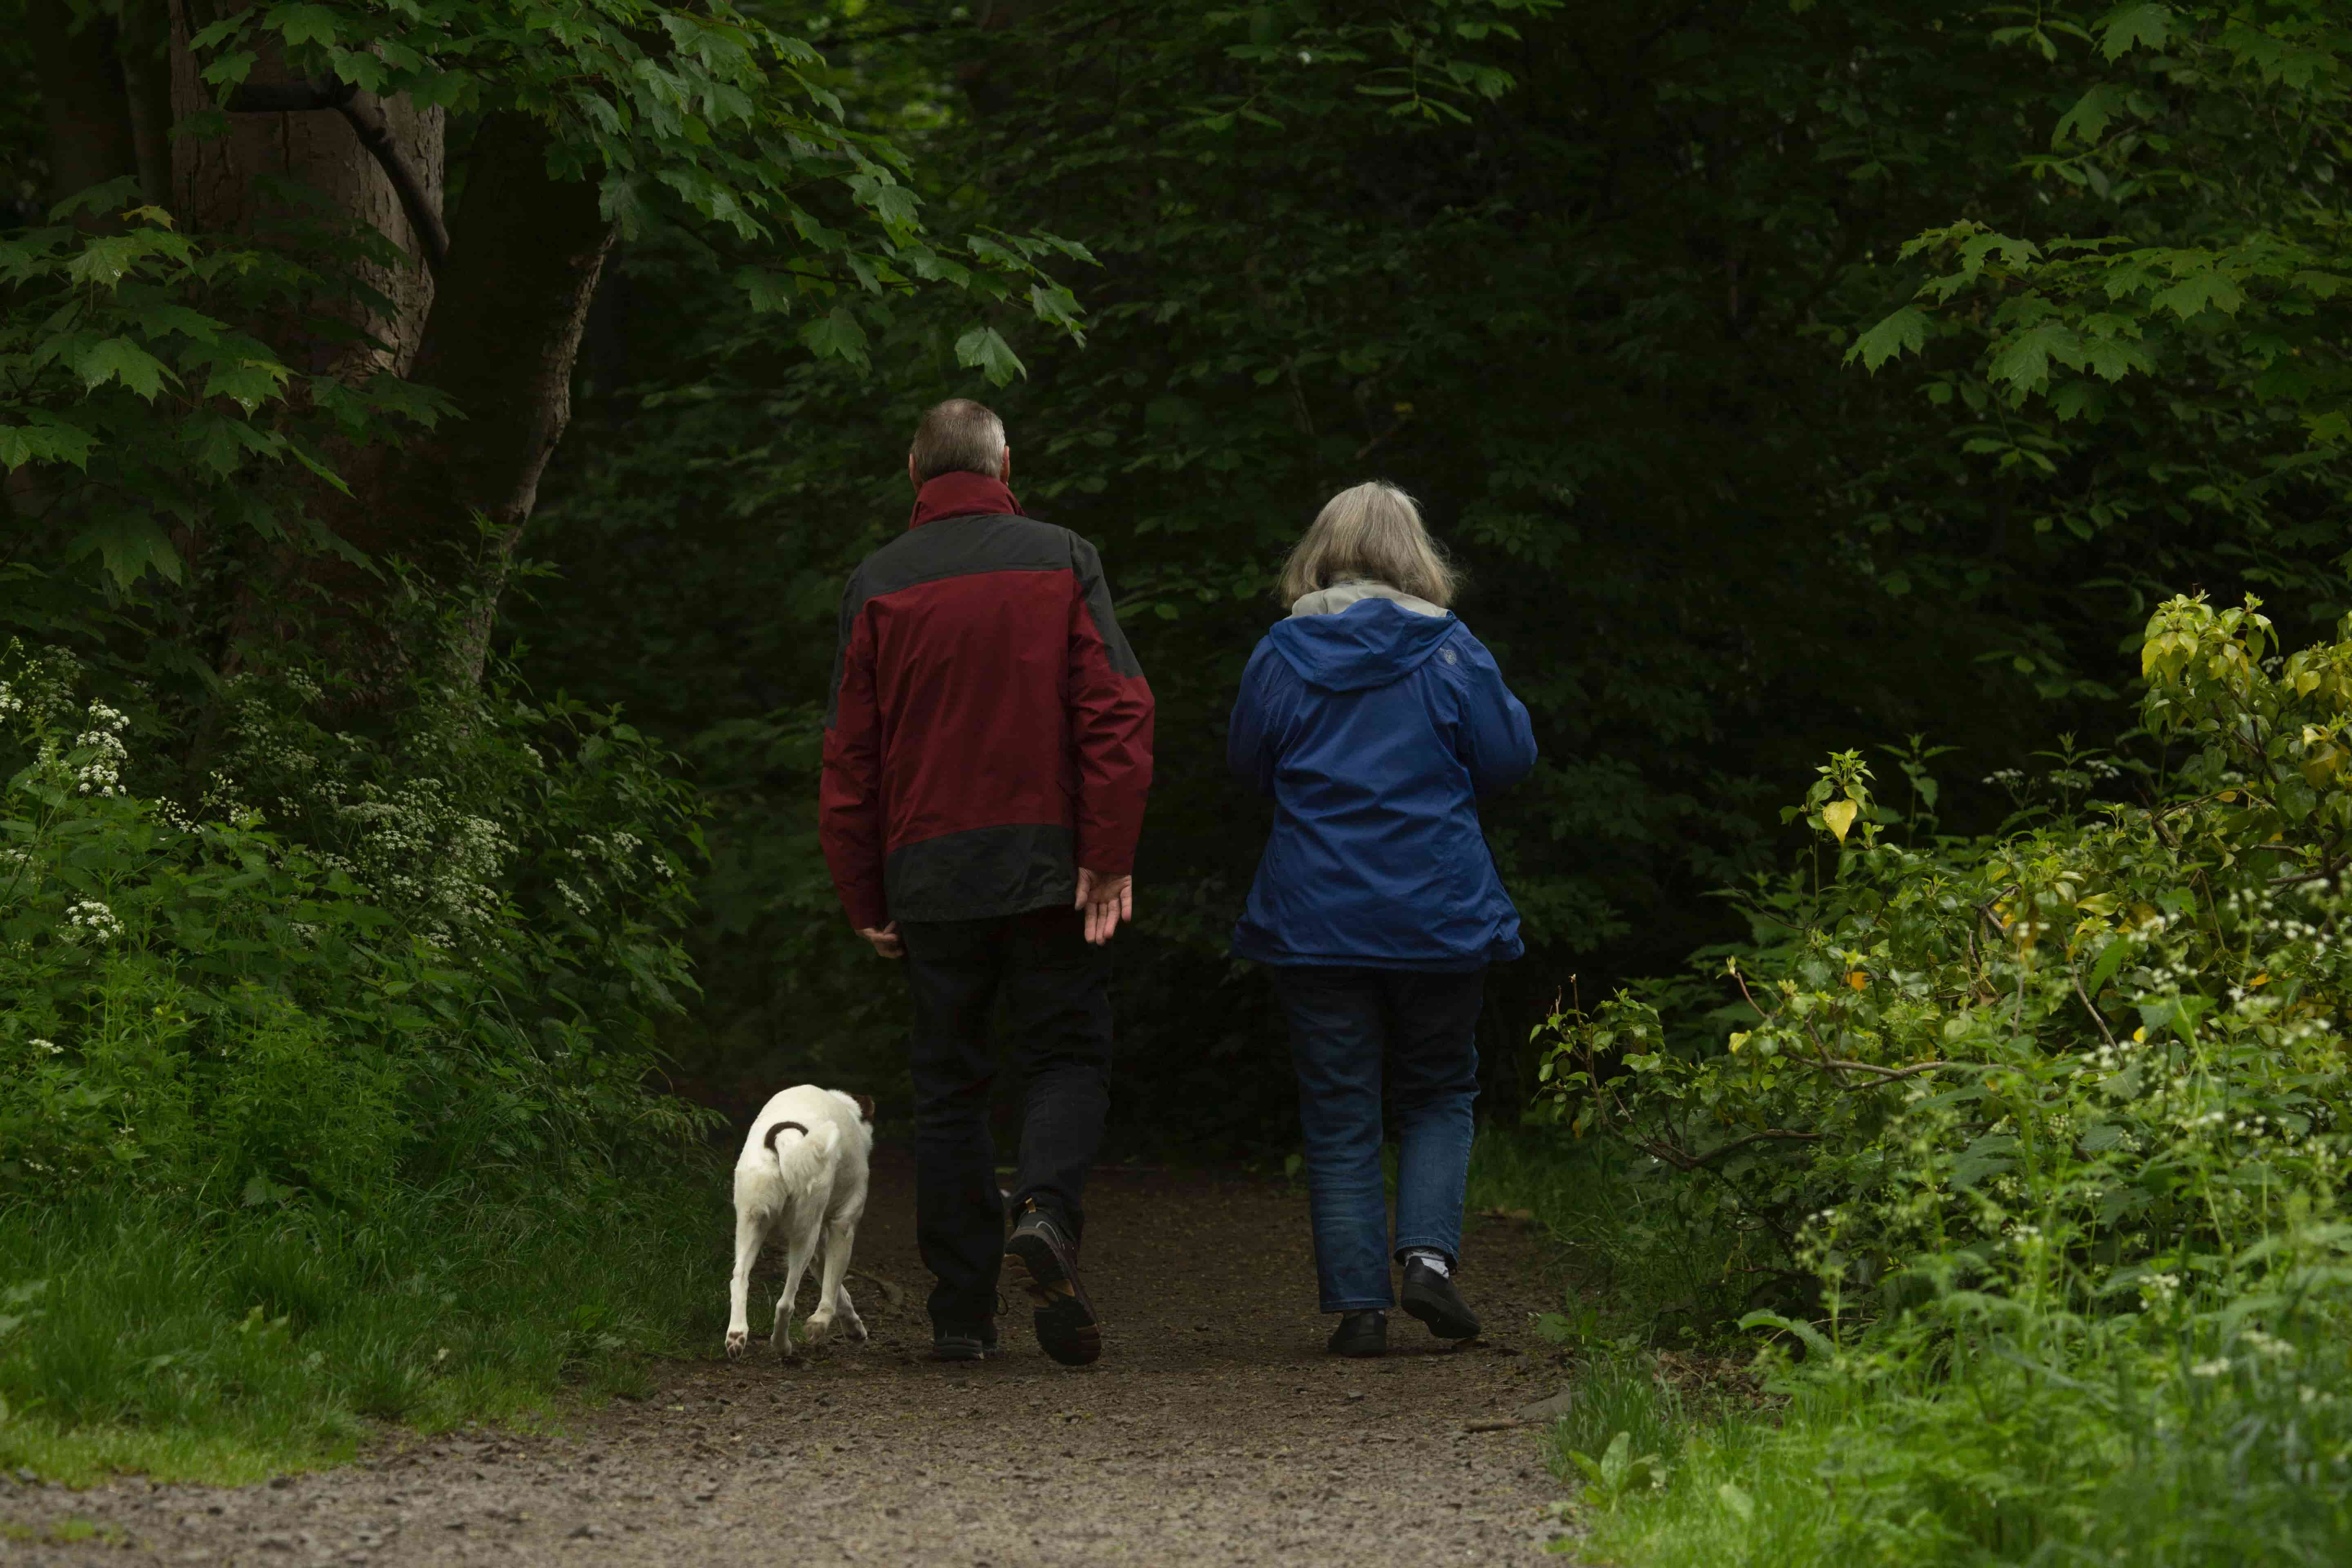 The back view of an older man and female walking a golden Labrador in the woods.